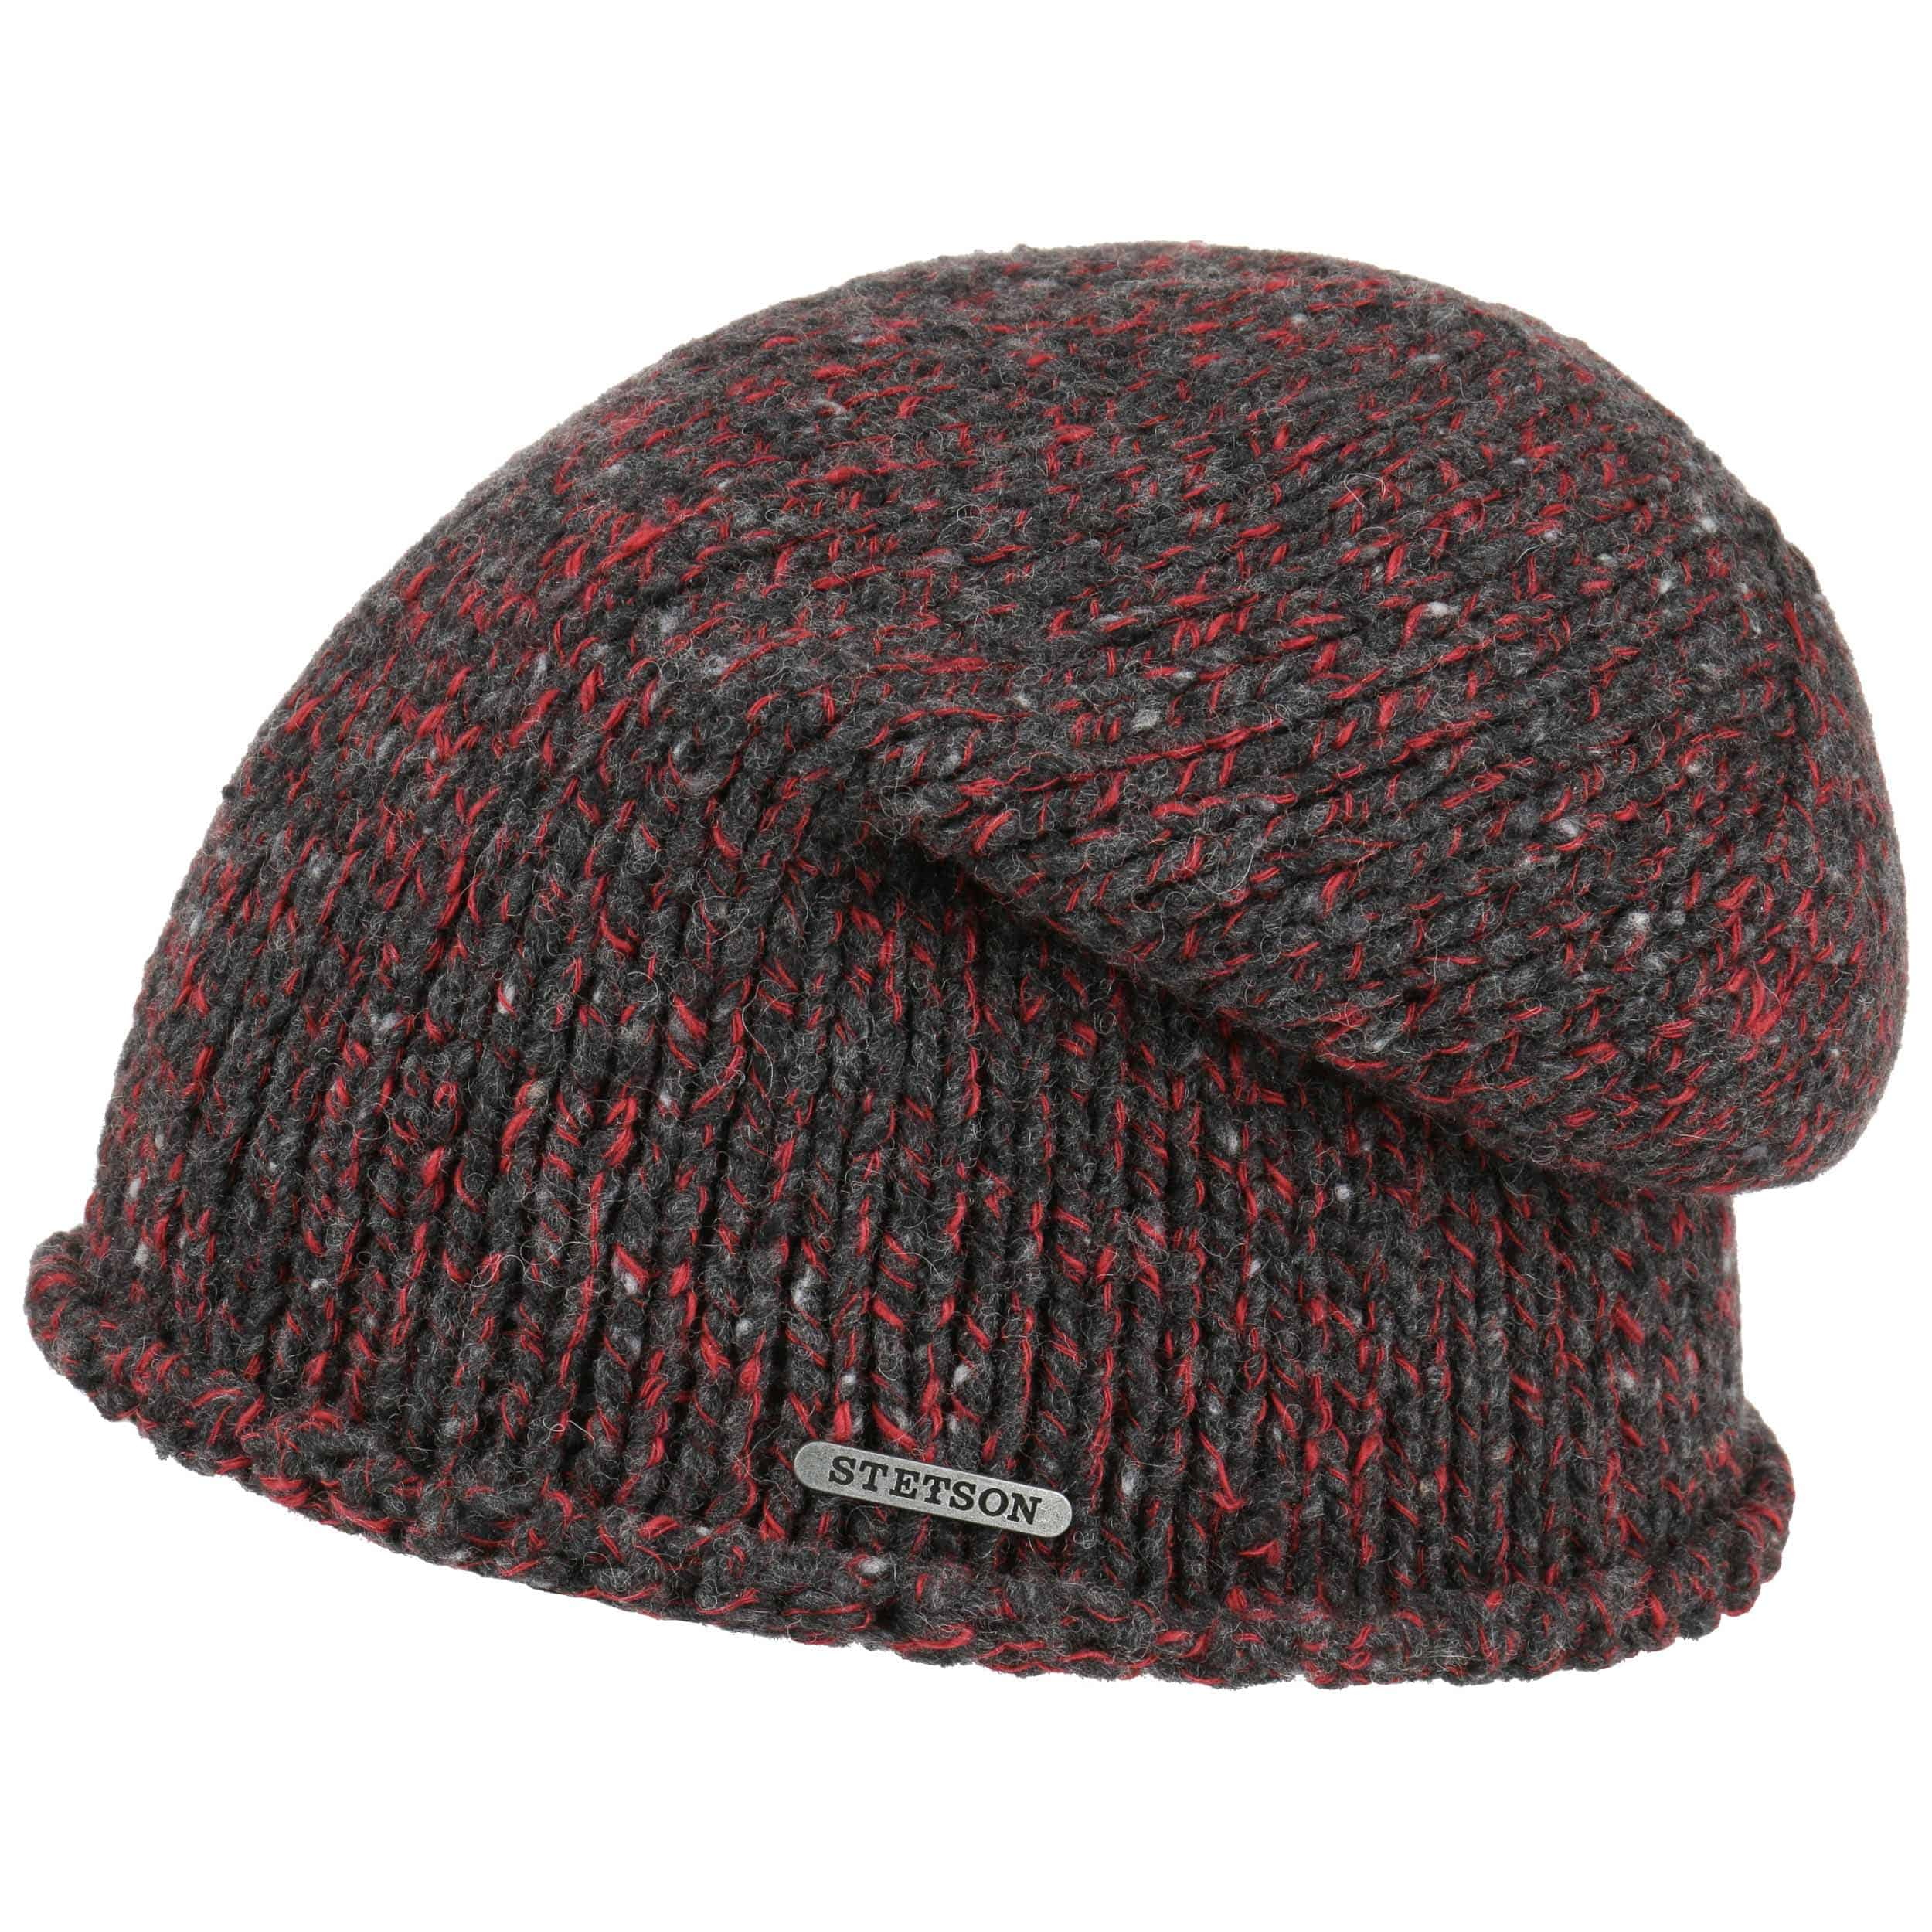 a74cac148c722 ... Leighton Long Beanie by Stetson - anthracite-red 4